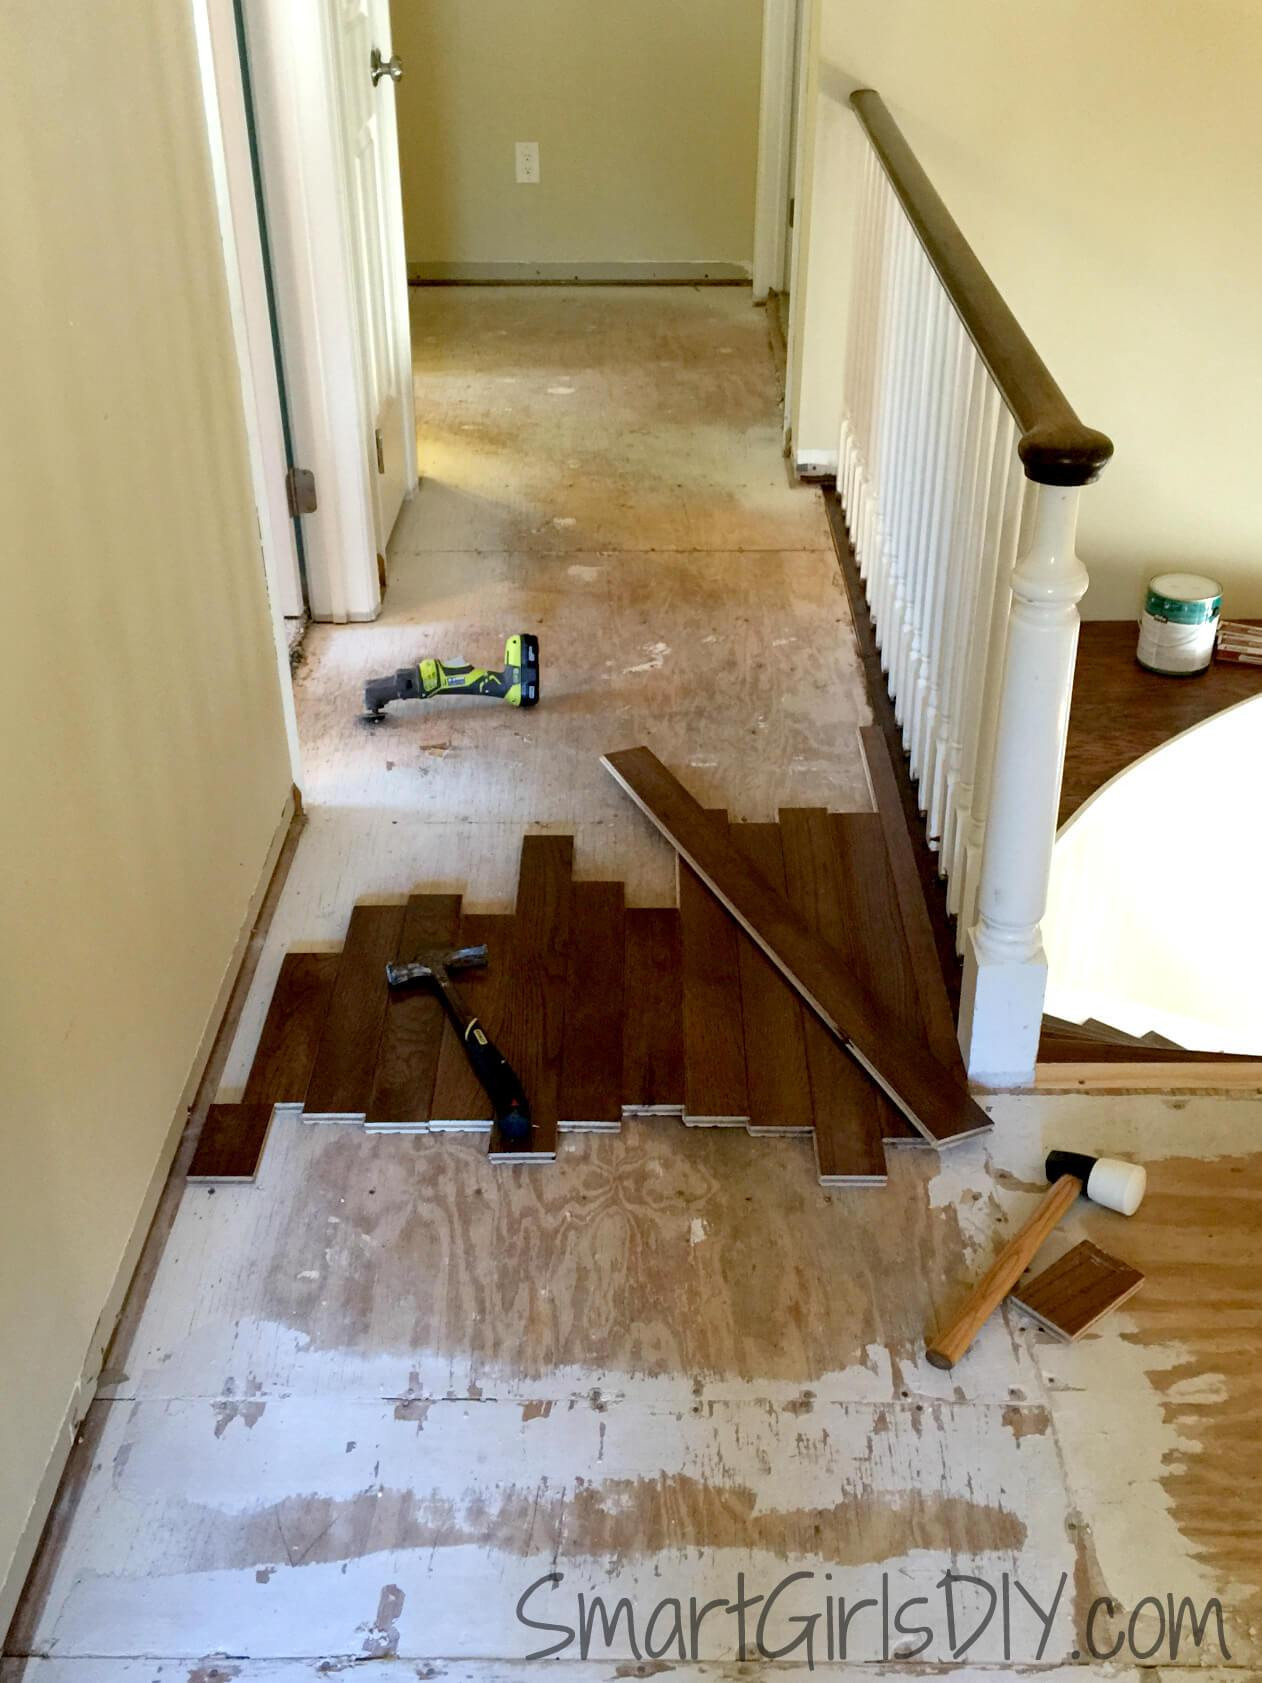 Can You Put Hardwood Floors Over Carpet Of Upstairs Hallway 1 Installing Hardwood Floors with Regard to Laying Out Bruce Hardwood Flooring